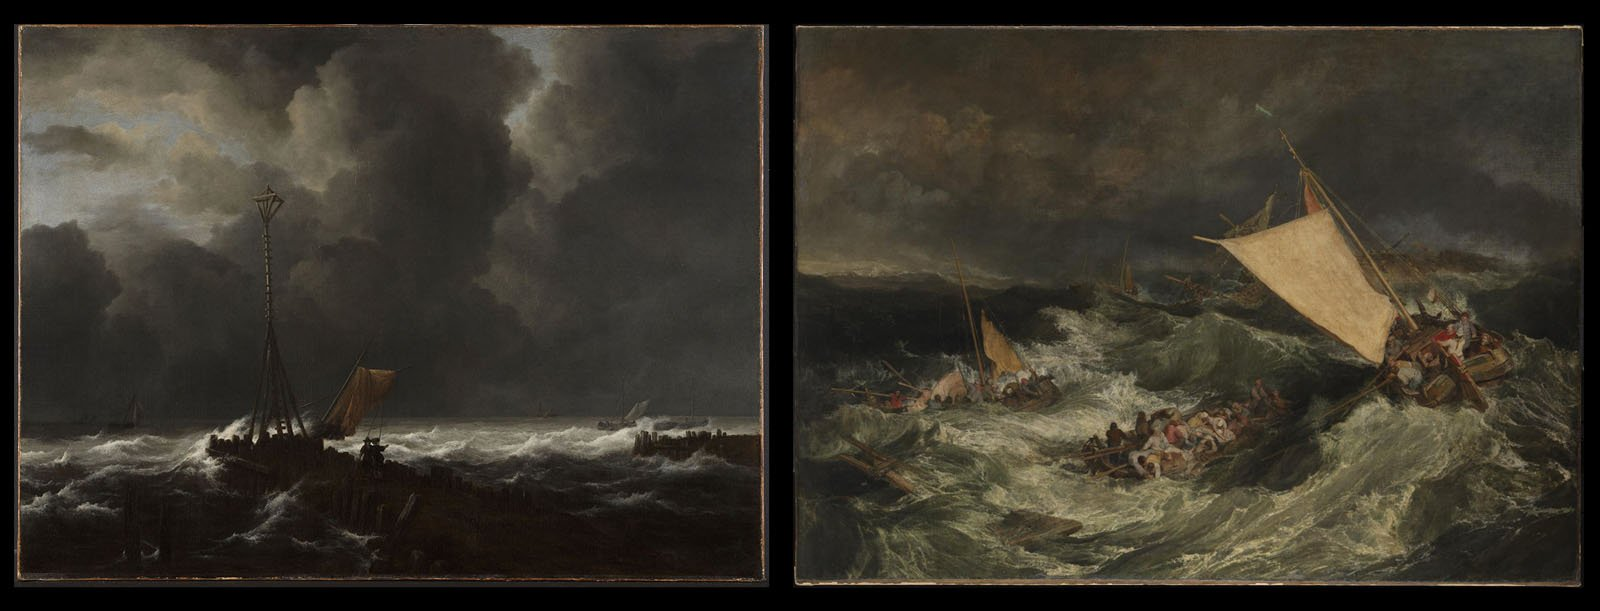 Jacob Van Ruisdael  'A Looming Storm' (left) Joseph Turner 'The Shipwreck' (right)